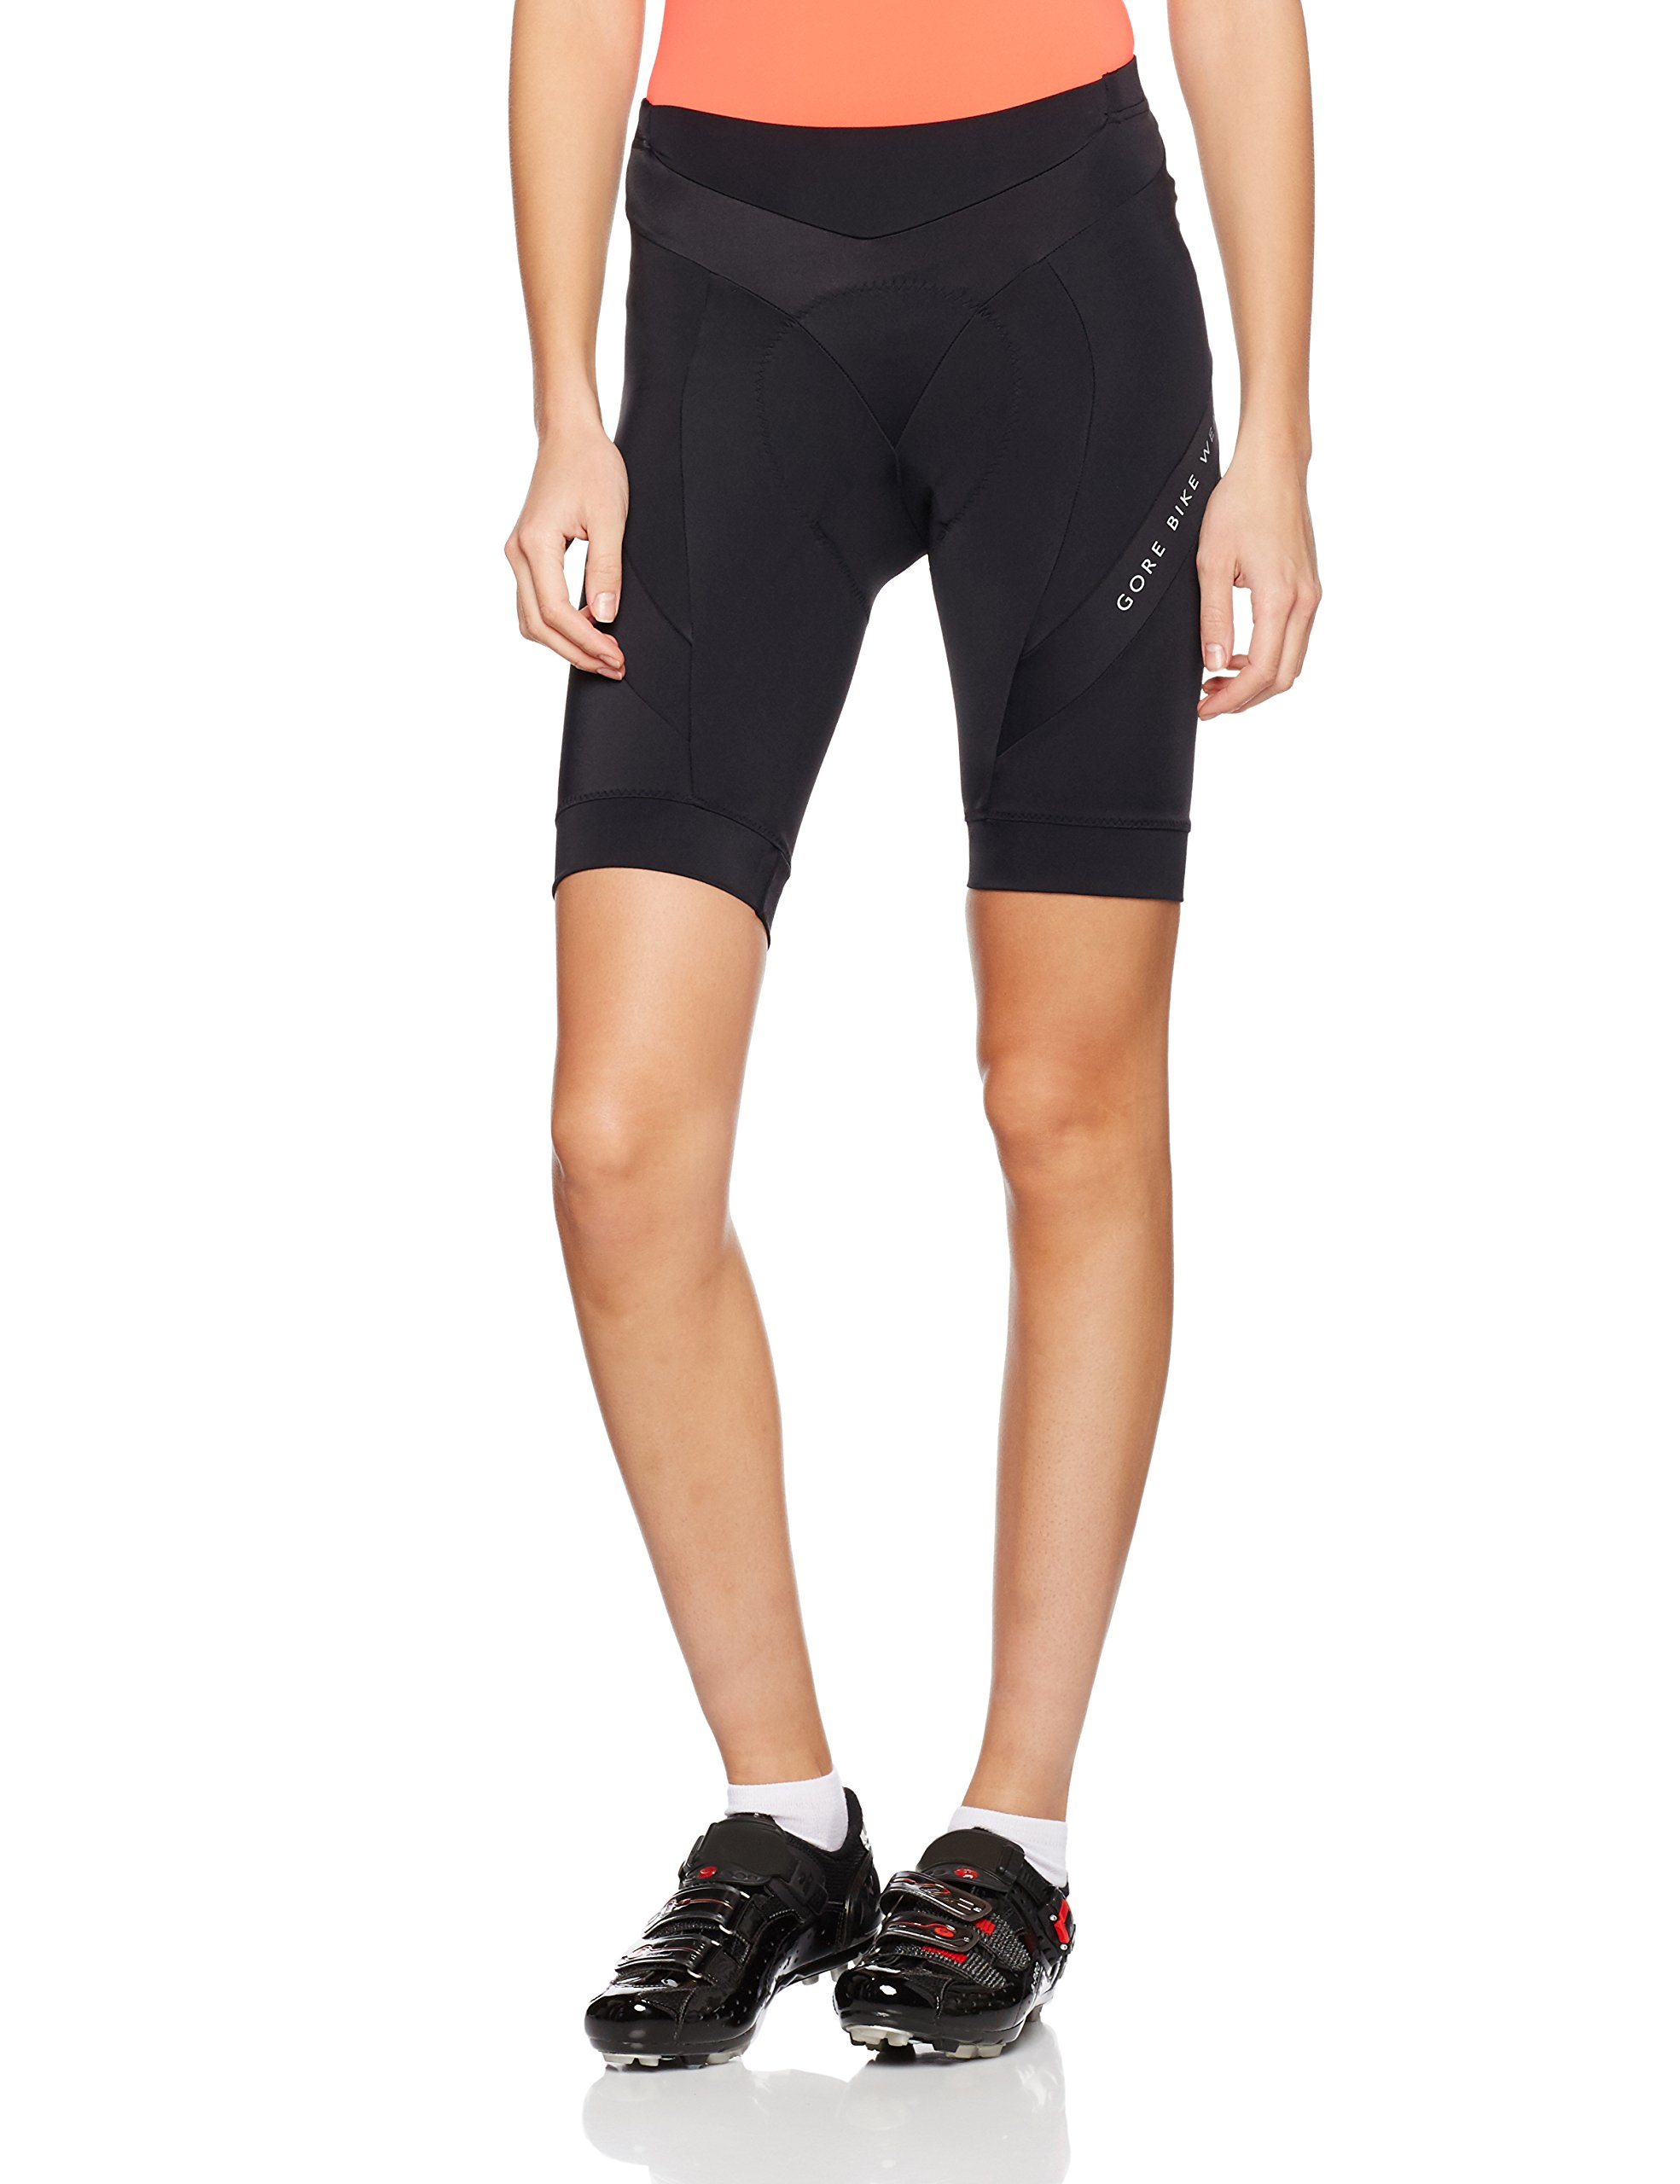 20889d8216b27 Women s Cycling Bottoms